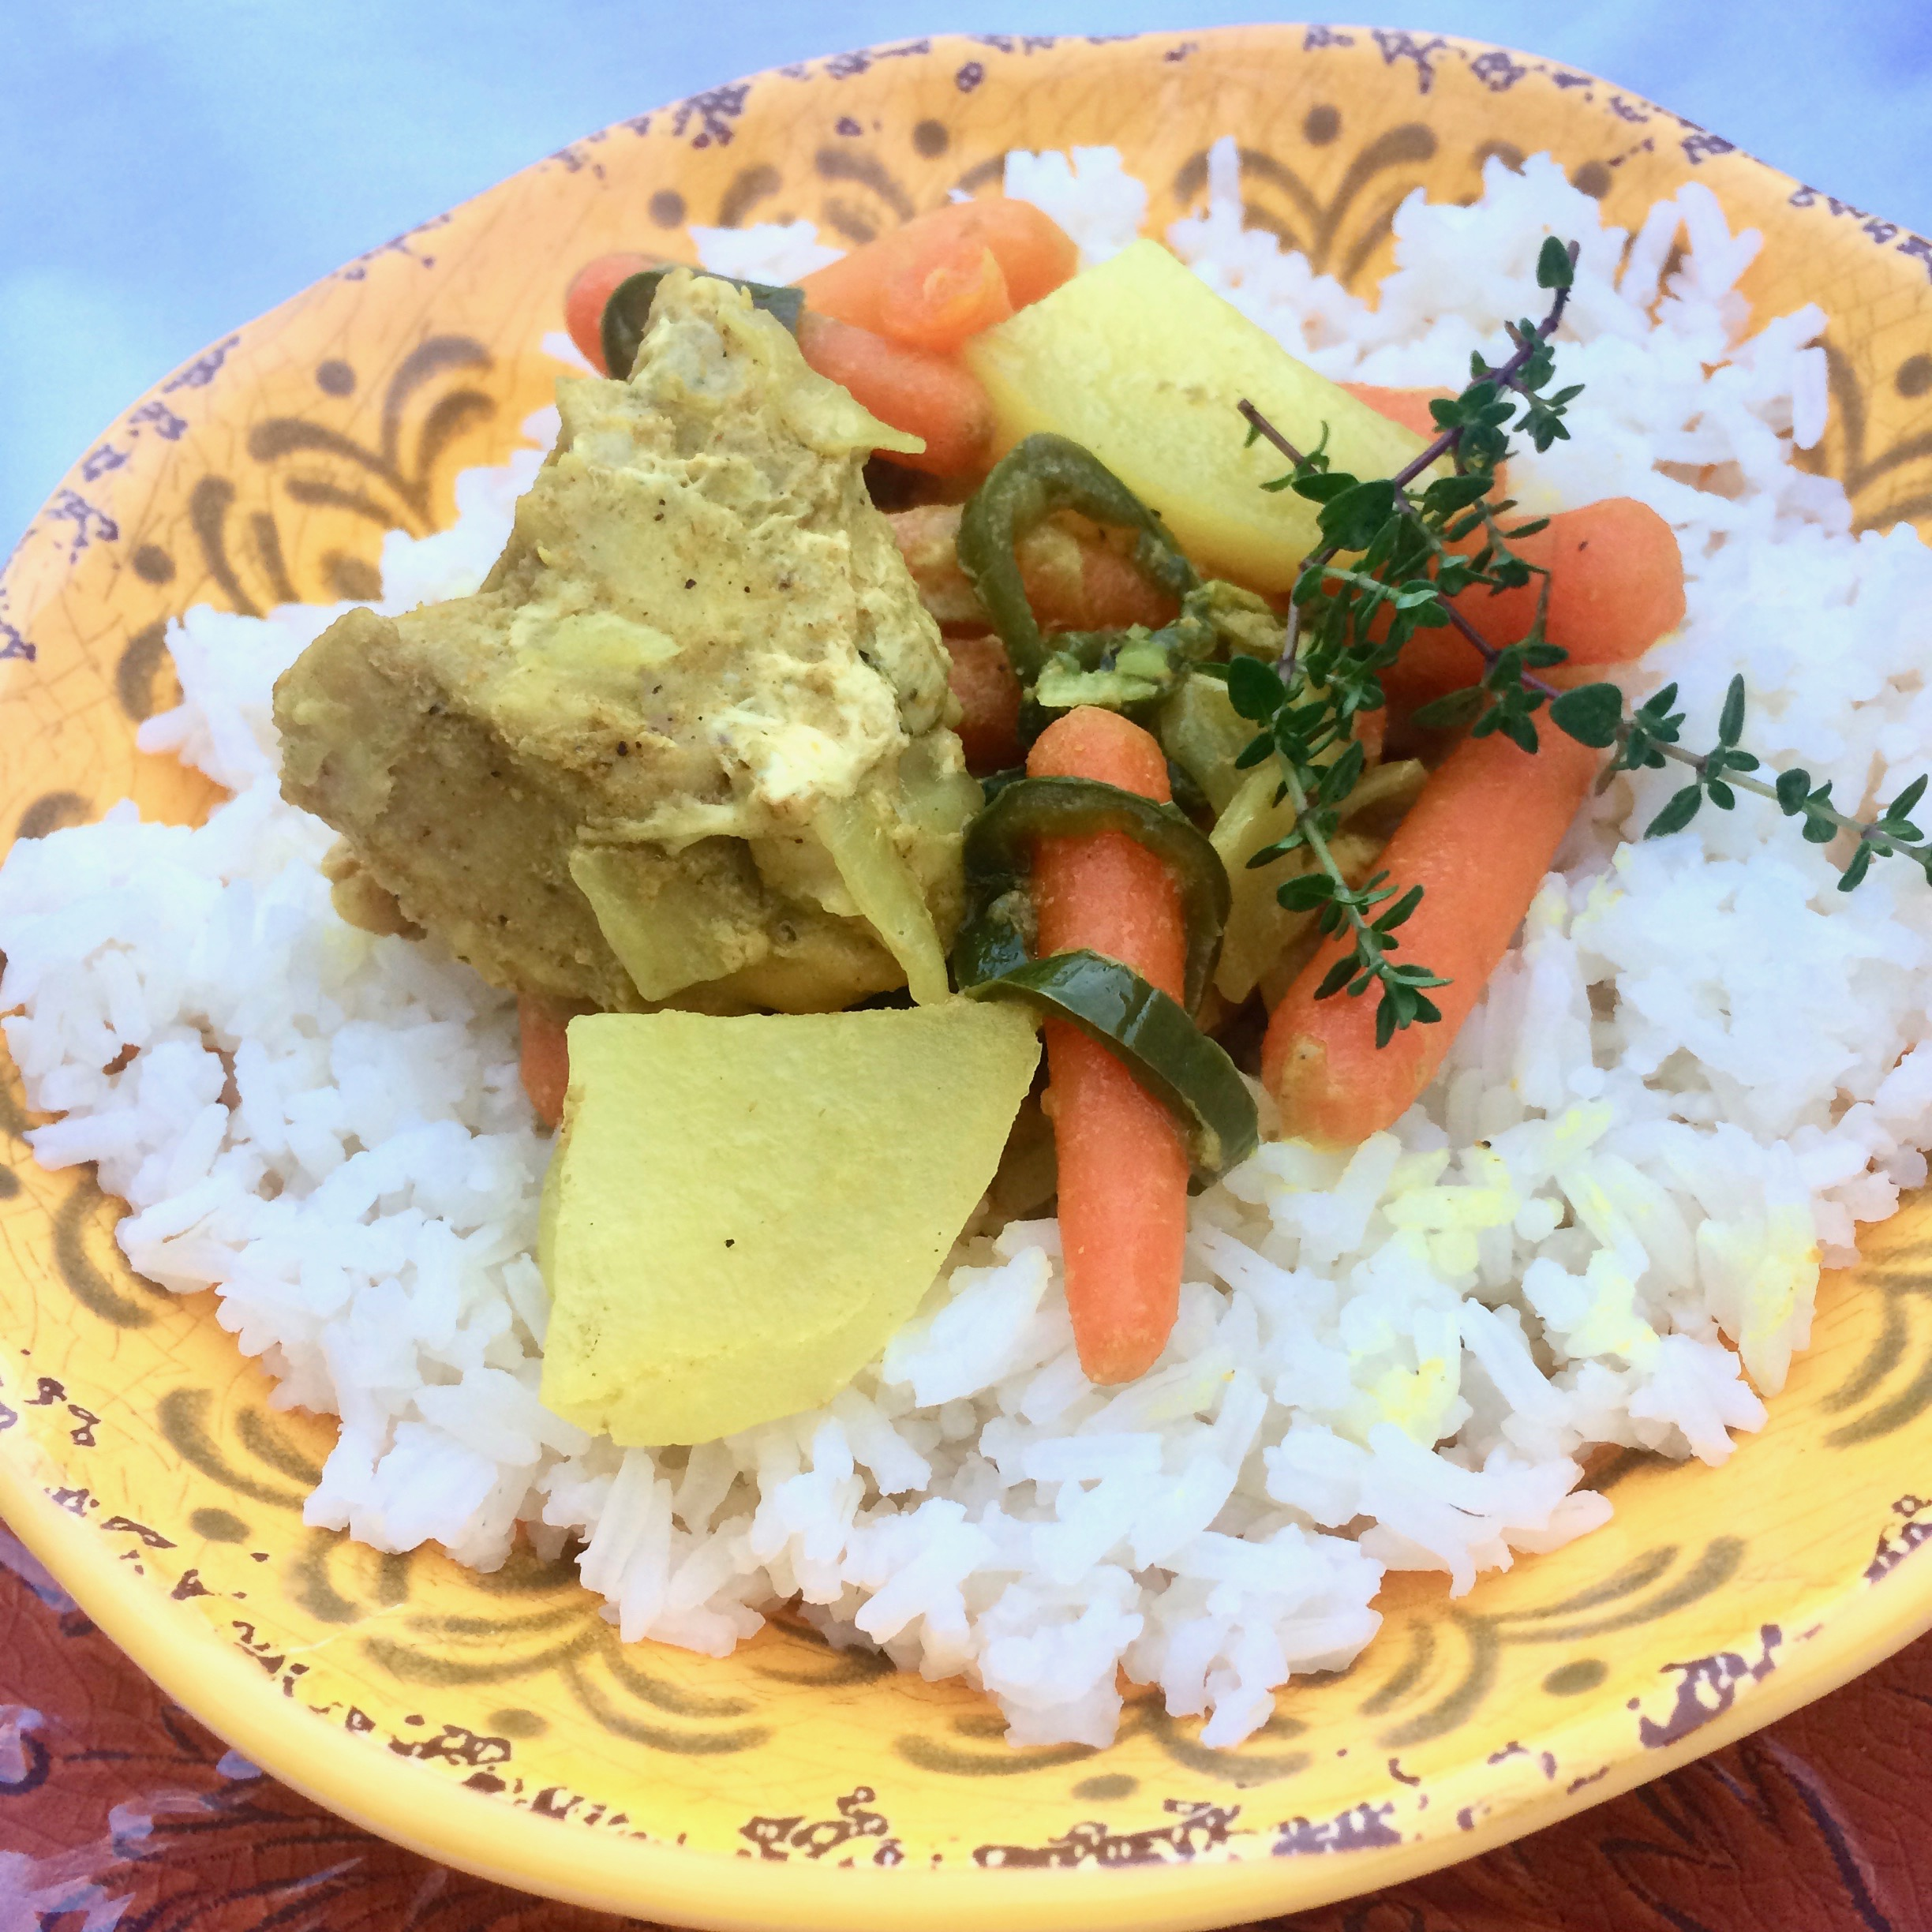 """This Jamaican chicken curry with potatoes and carrots is quick and easy to make in the Instant Pot. """"If you can't go to Jamaica, why not bring Jamaica to you with this lively chicken dish!"""" says Bibi. """"Jamaican curry usually contains allspice, so look for a blend that has it, or make your own. Even with potatoes in the dish, steamed basmati rice is a great add-on, but feel free to leave it out, or use cauli rice to cut back on the carbs."""""""